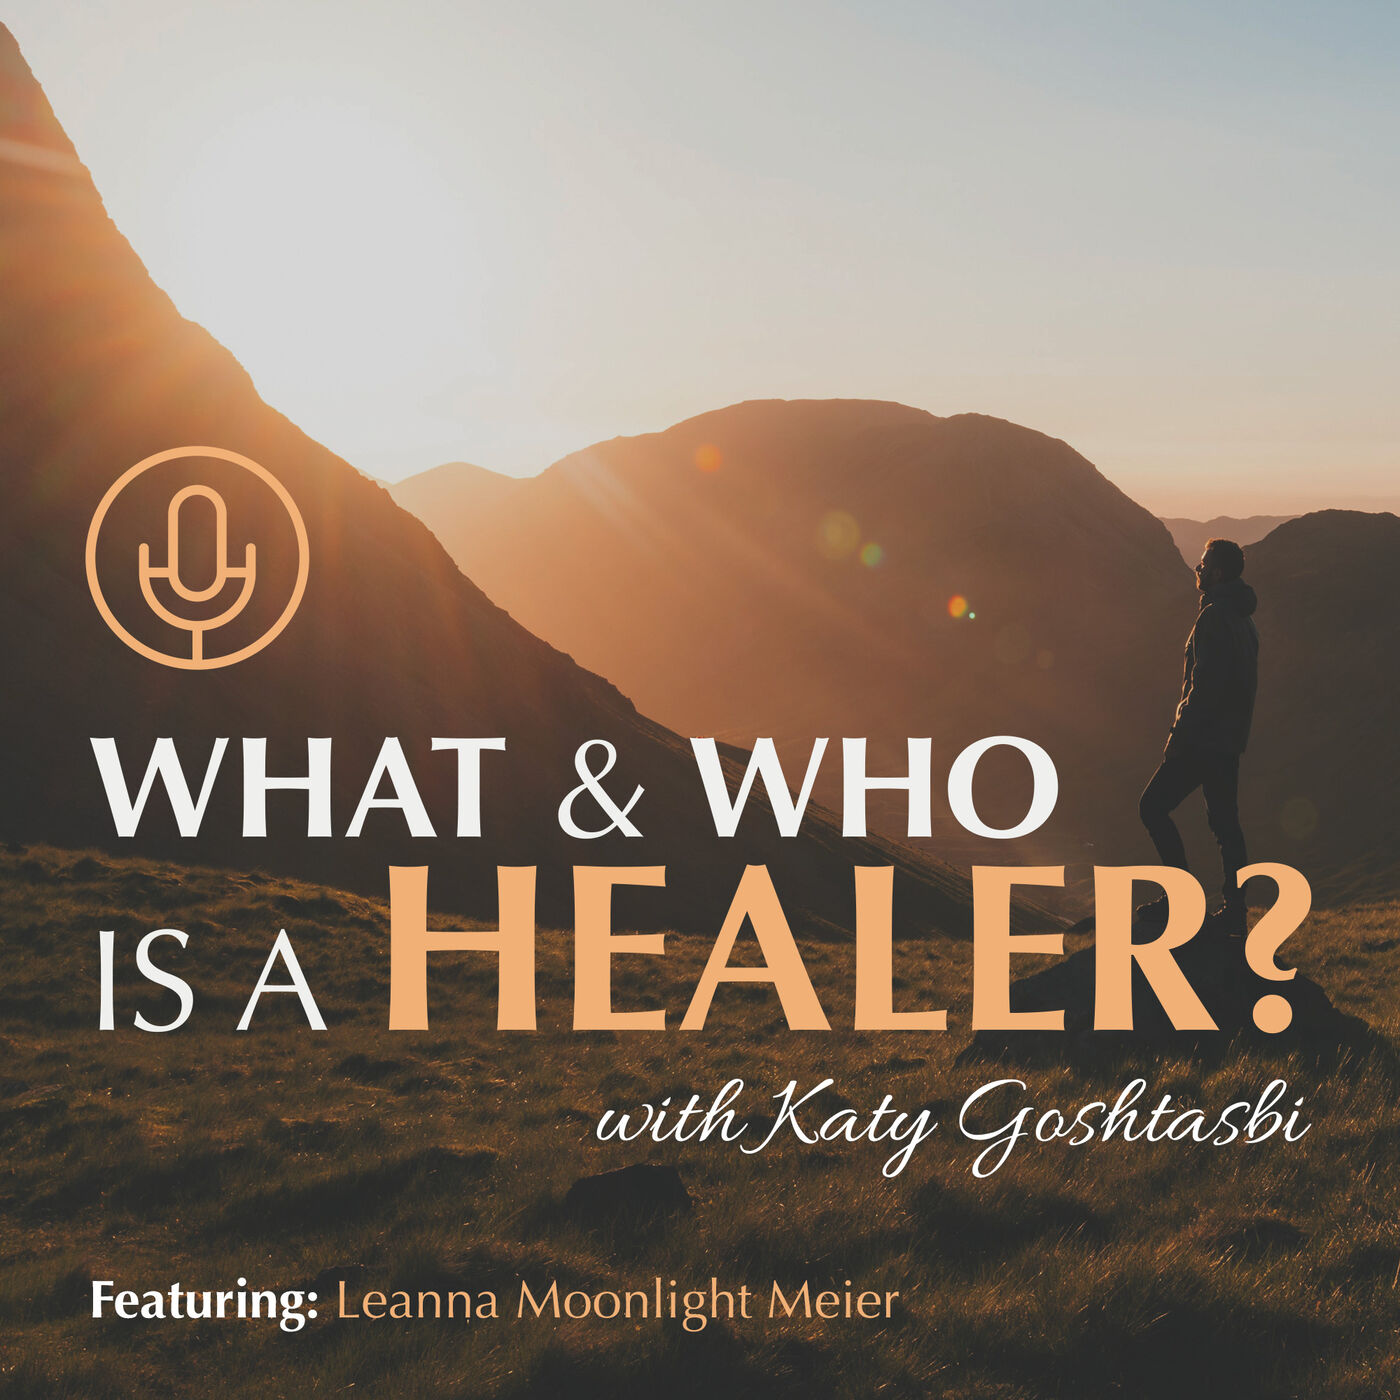 What & Who Is a Healer? Interview with Leanna Moonlight Meier